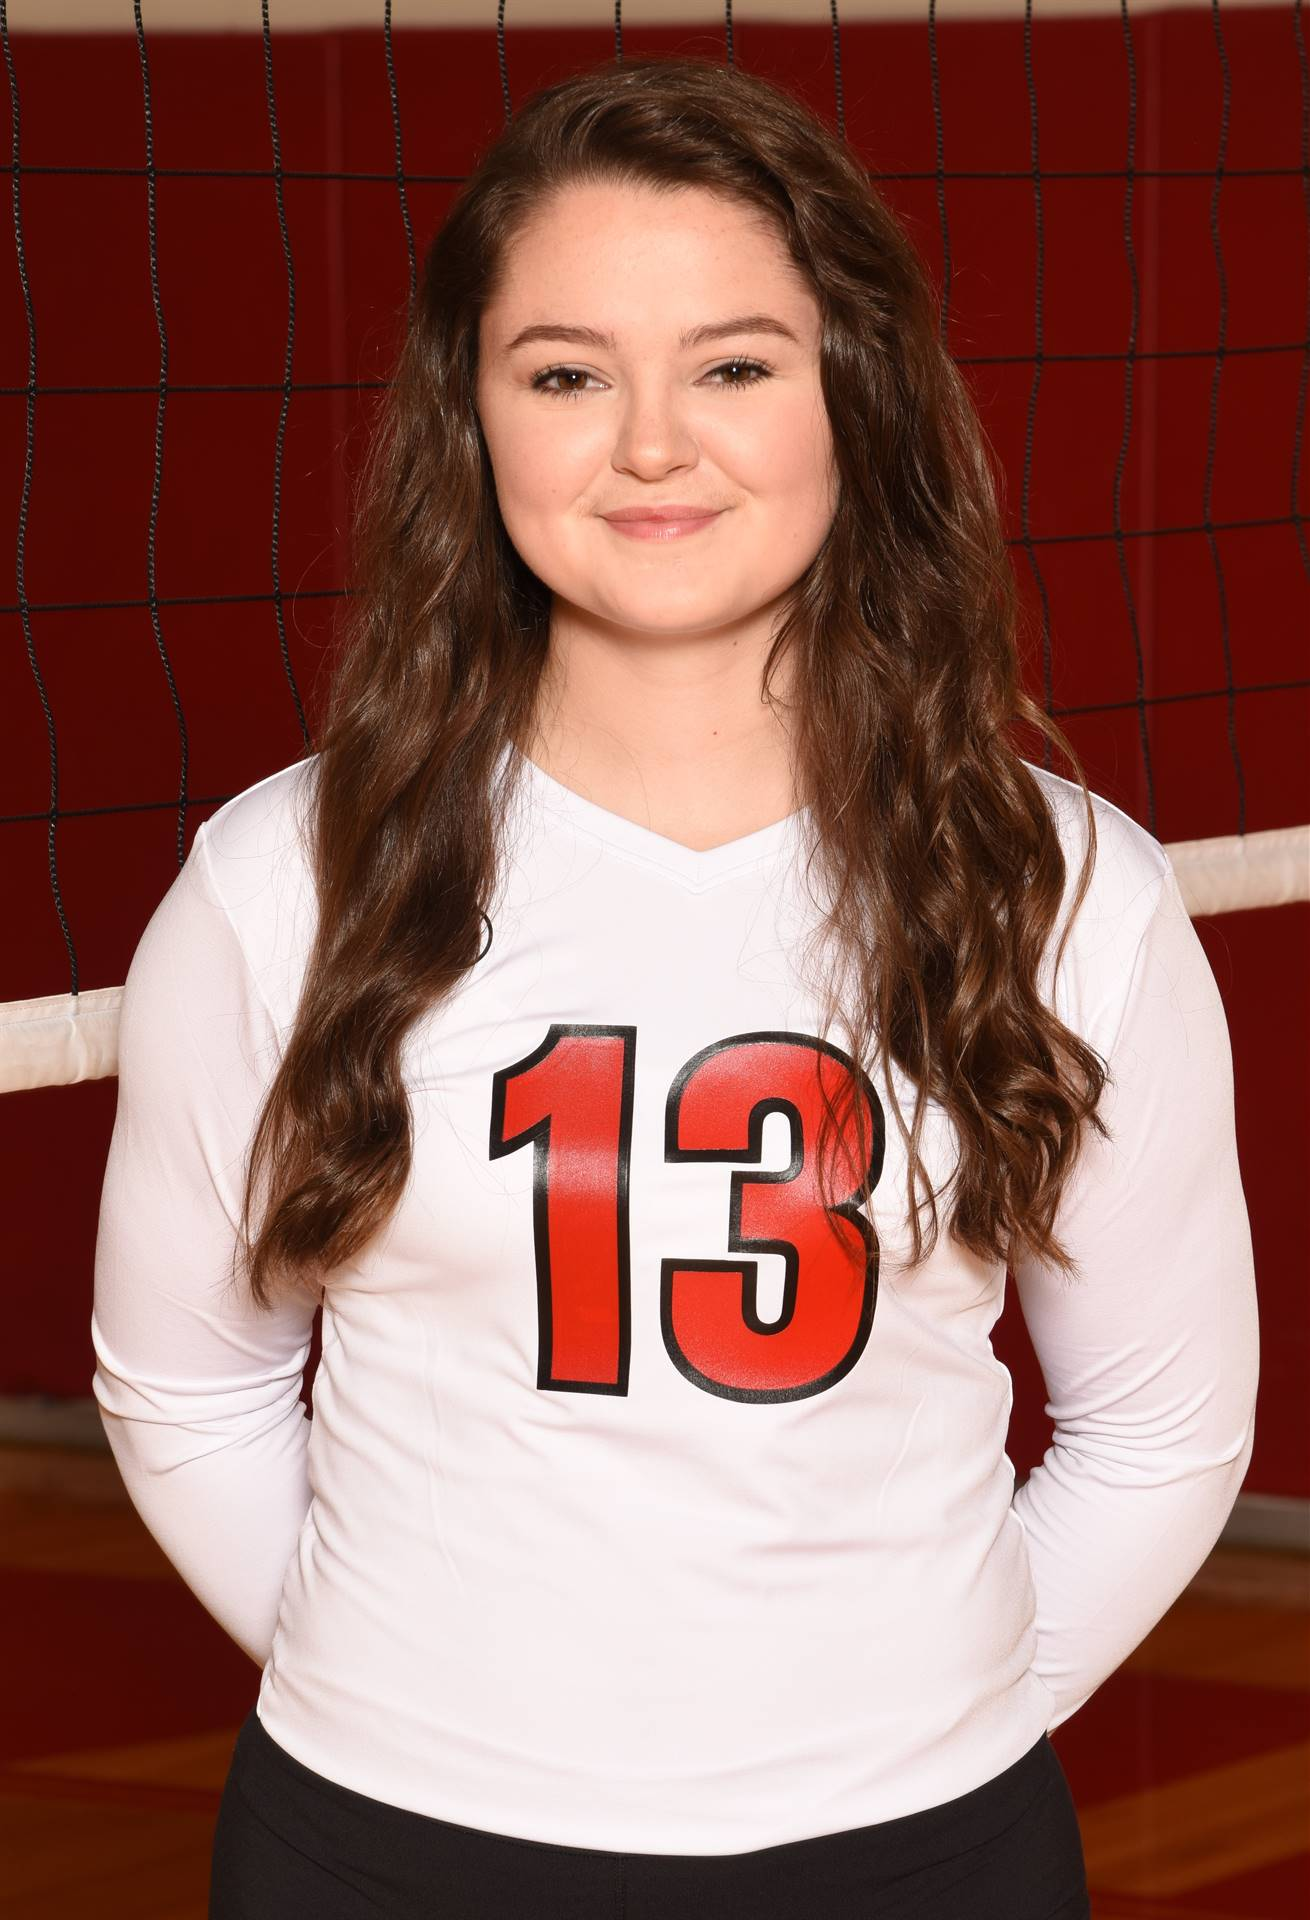 Senior Volleyball Picture - Mallory Laveglia